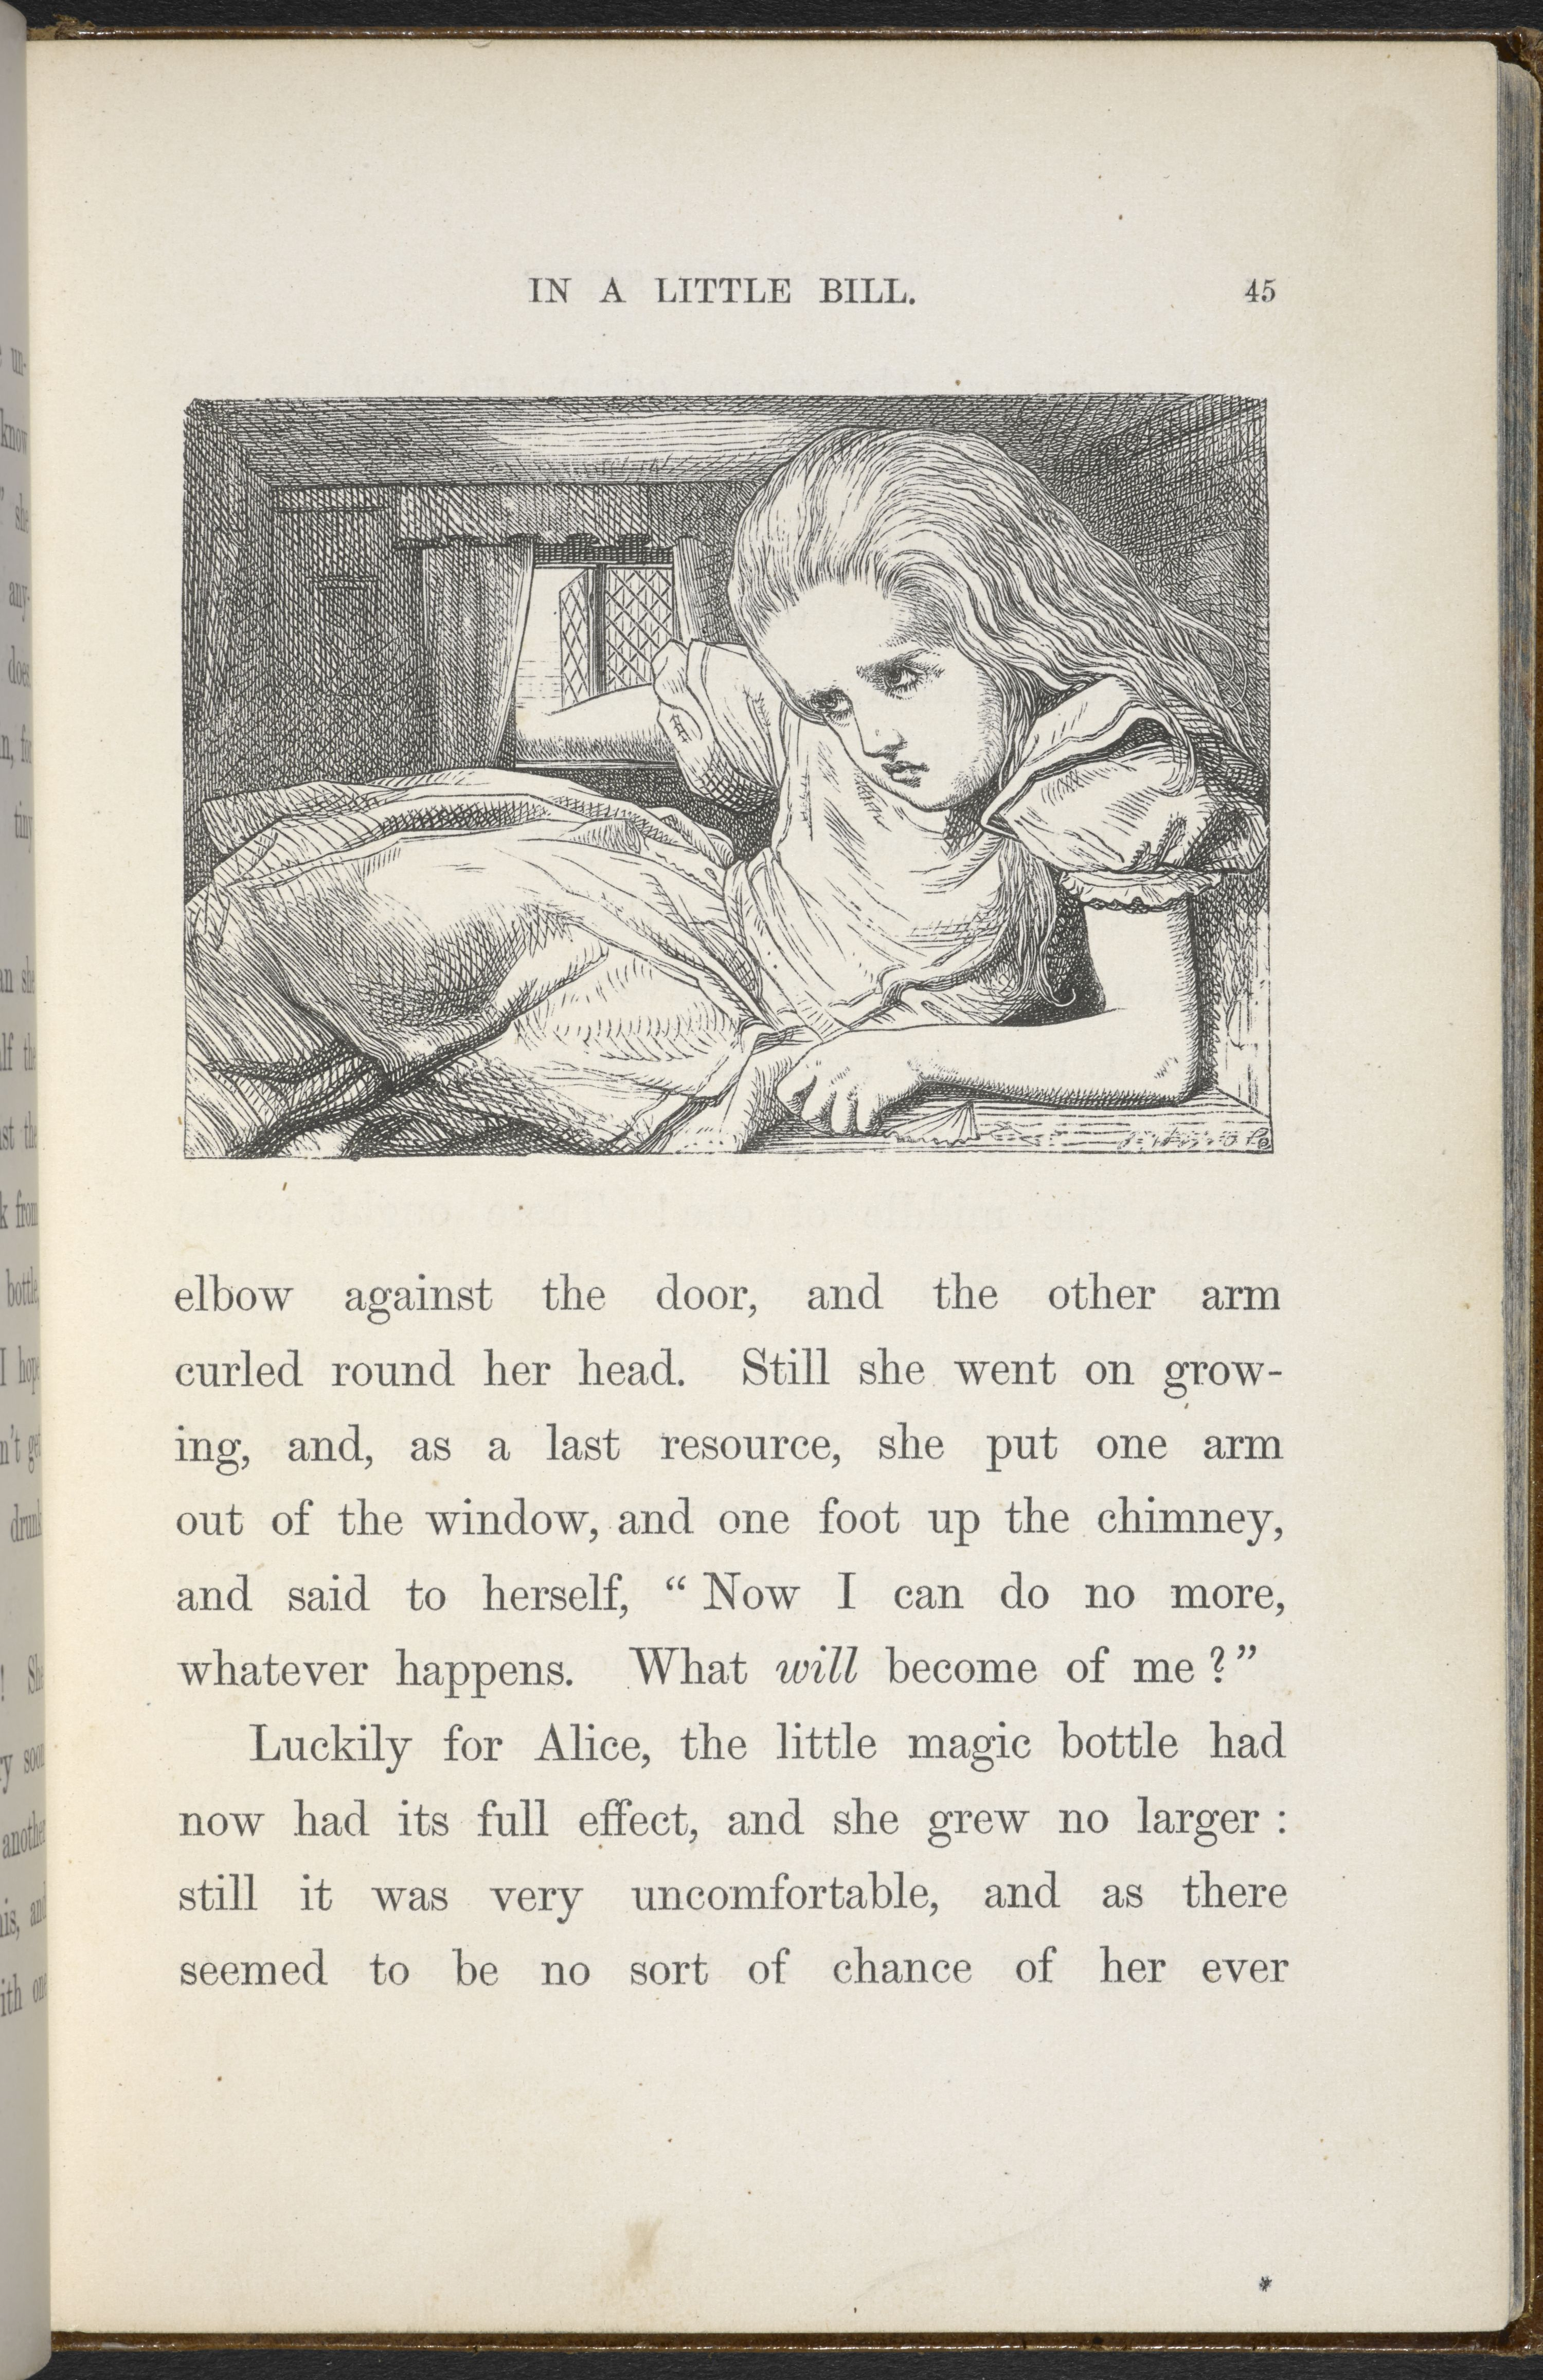 Illustration by John Tenniel from the first edition of Alice's Adventures in Wonderland (1865) Photography courtesy of the British Library